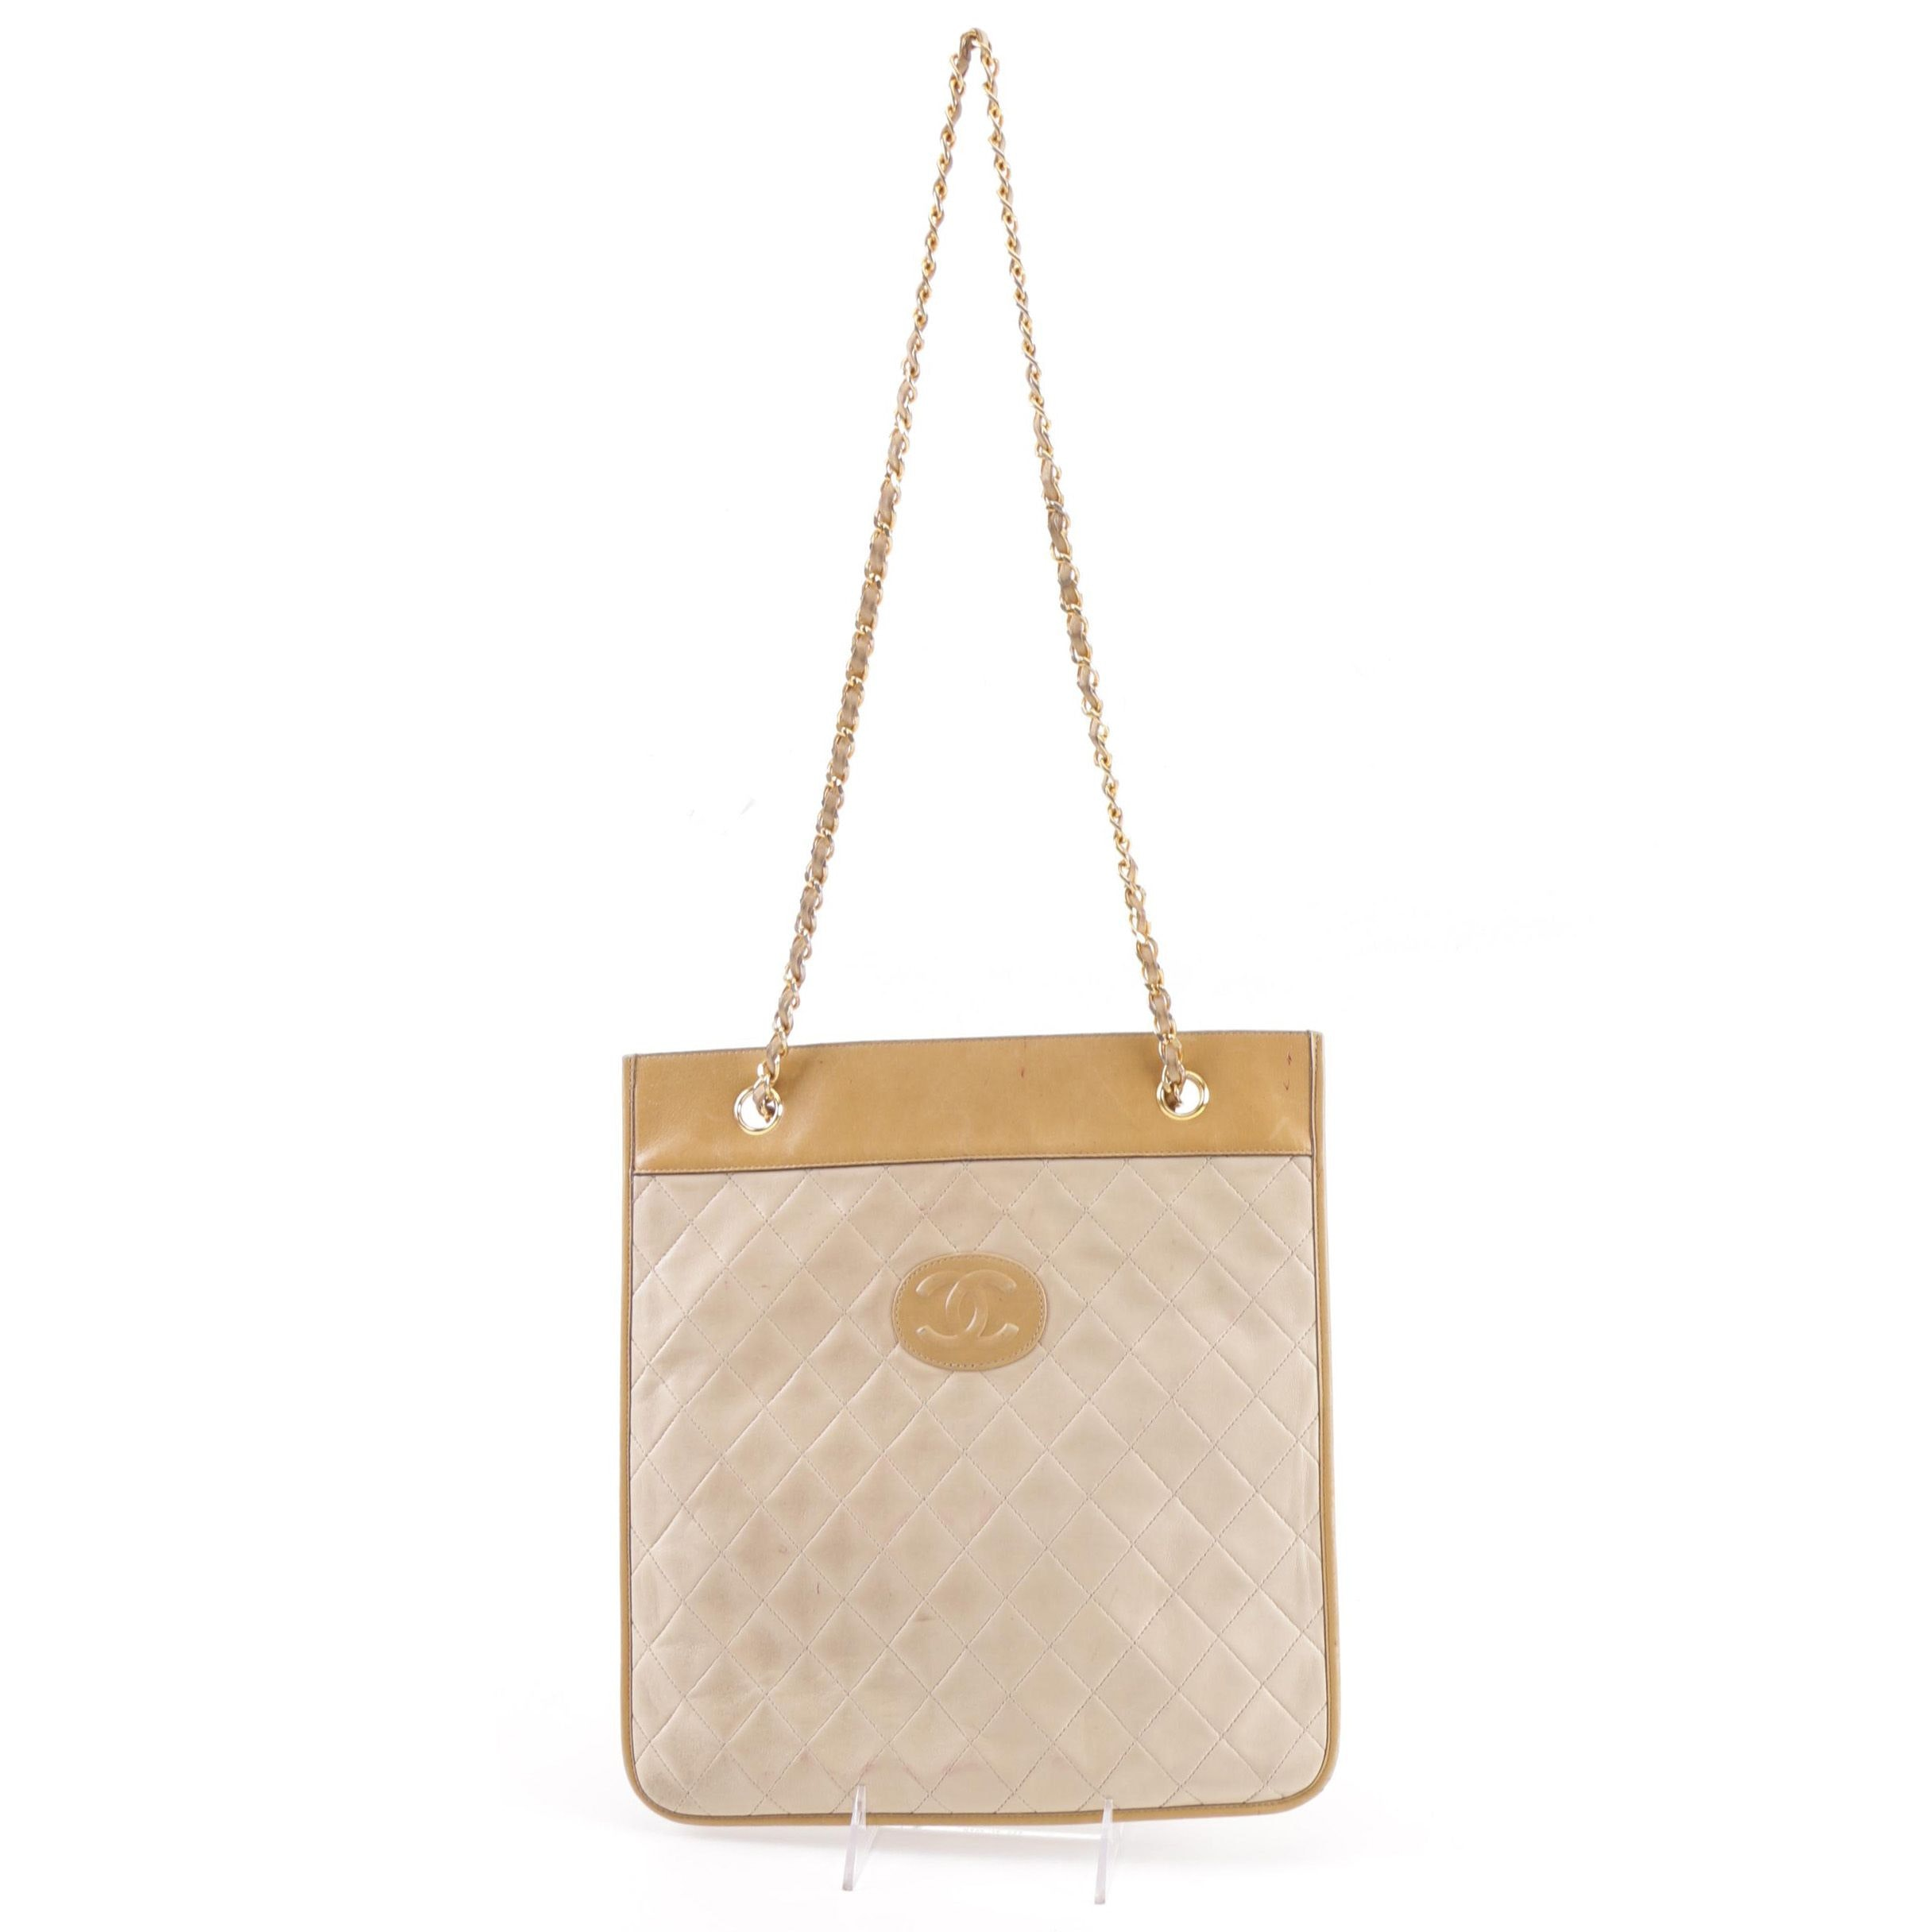 Vintage Chanel CC Tan and Beige Leather Chain Strap Shoulder Bag